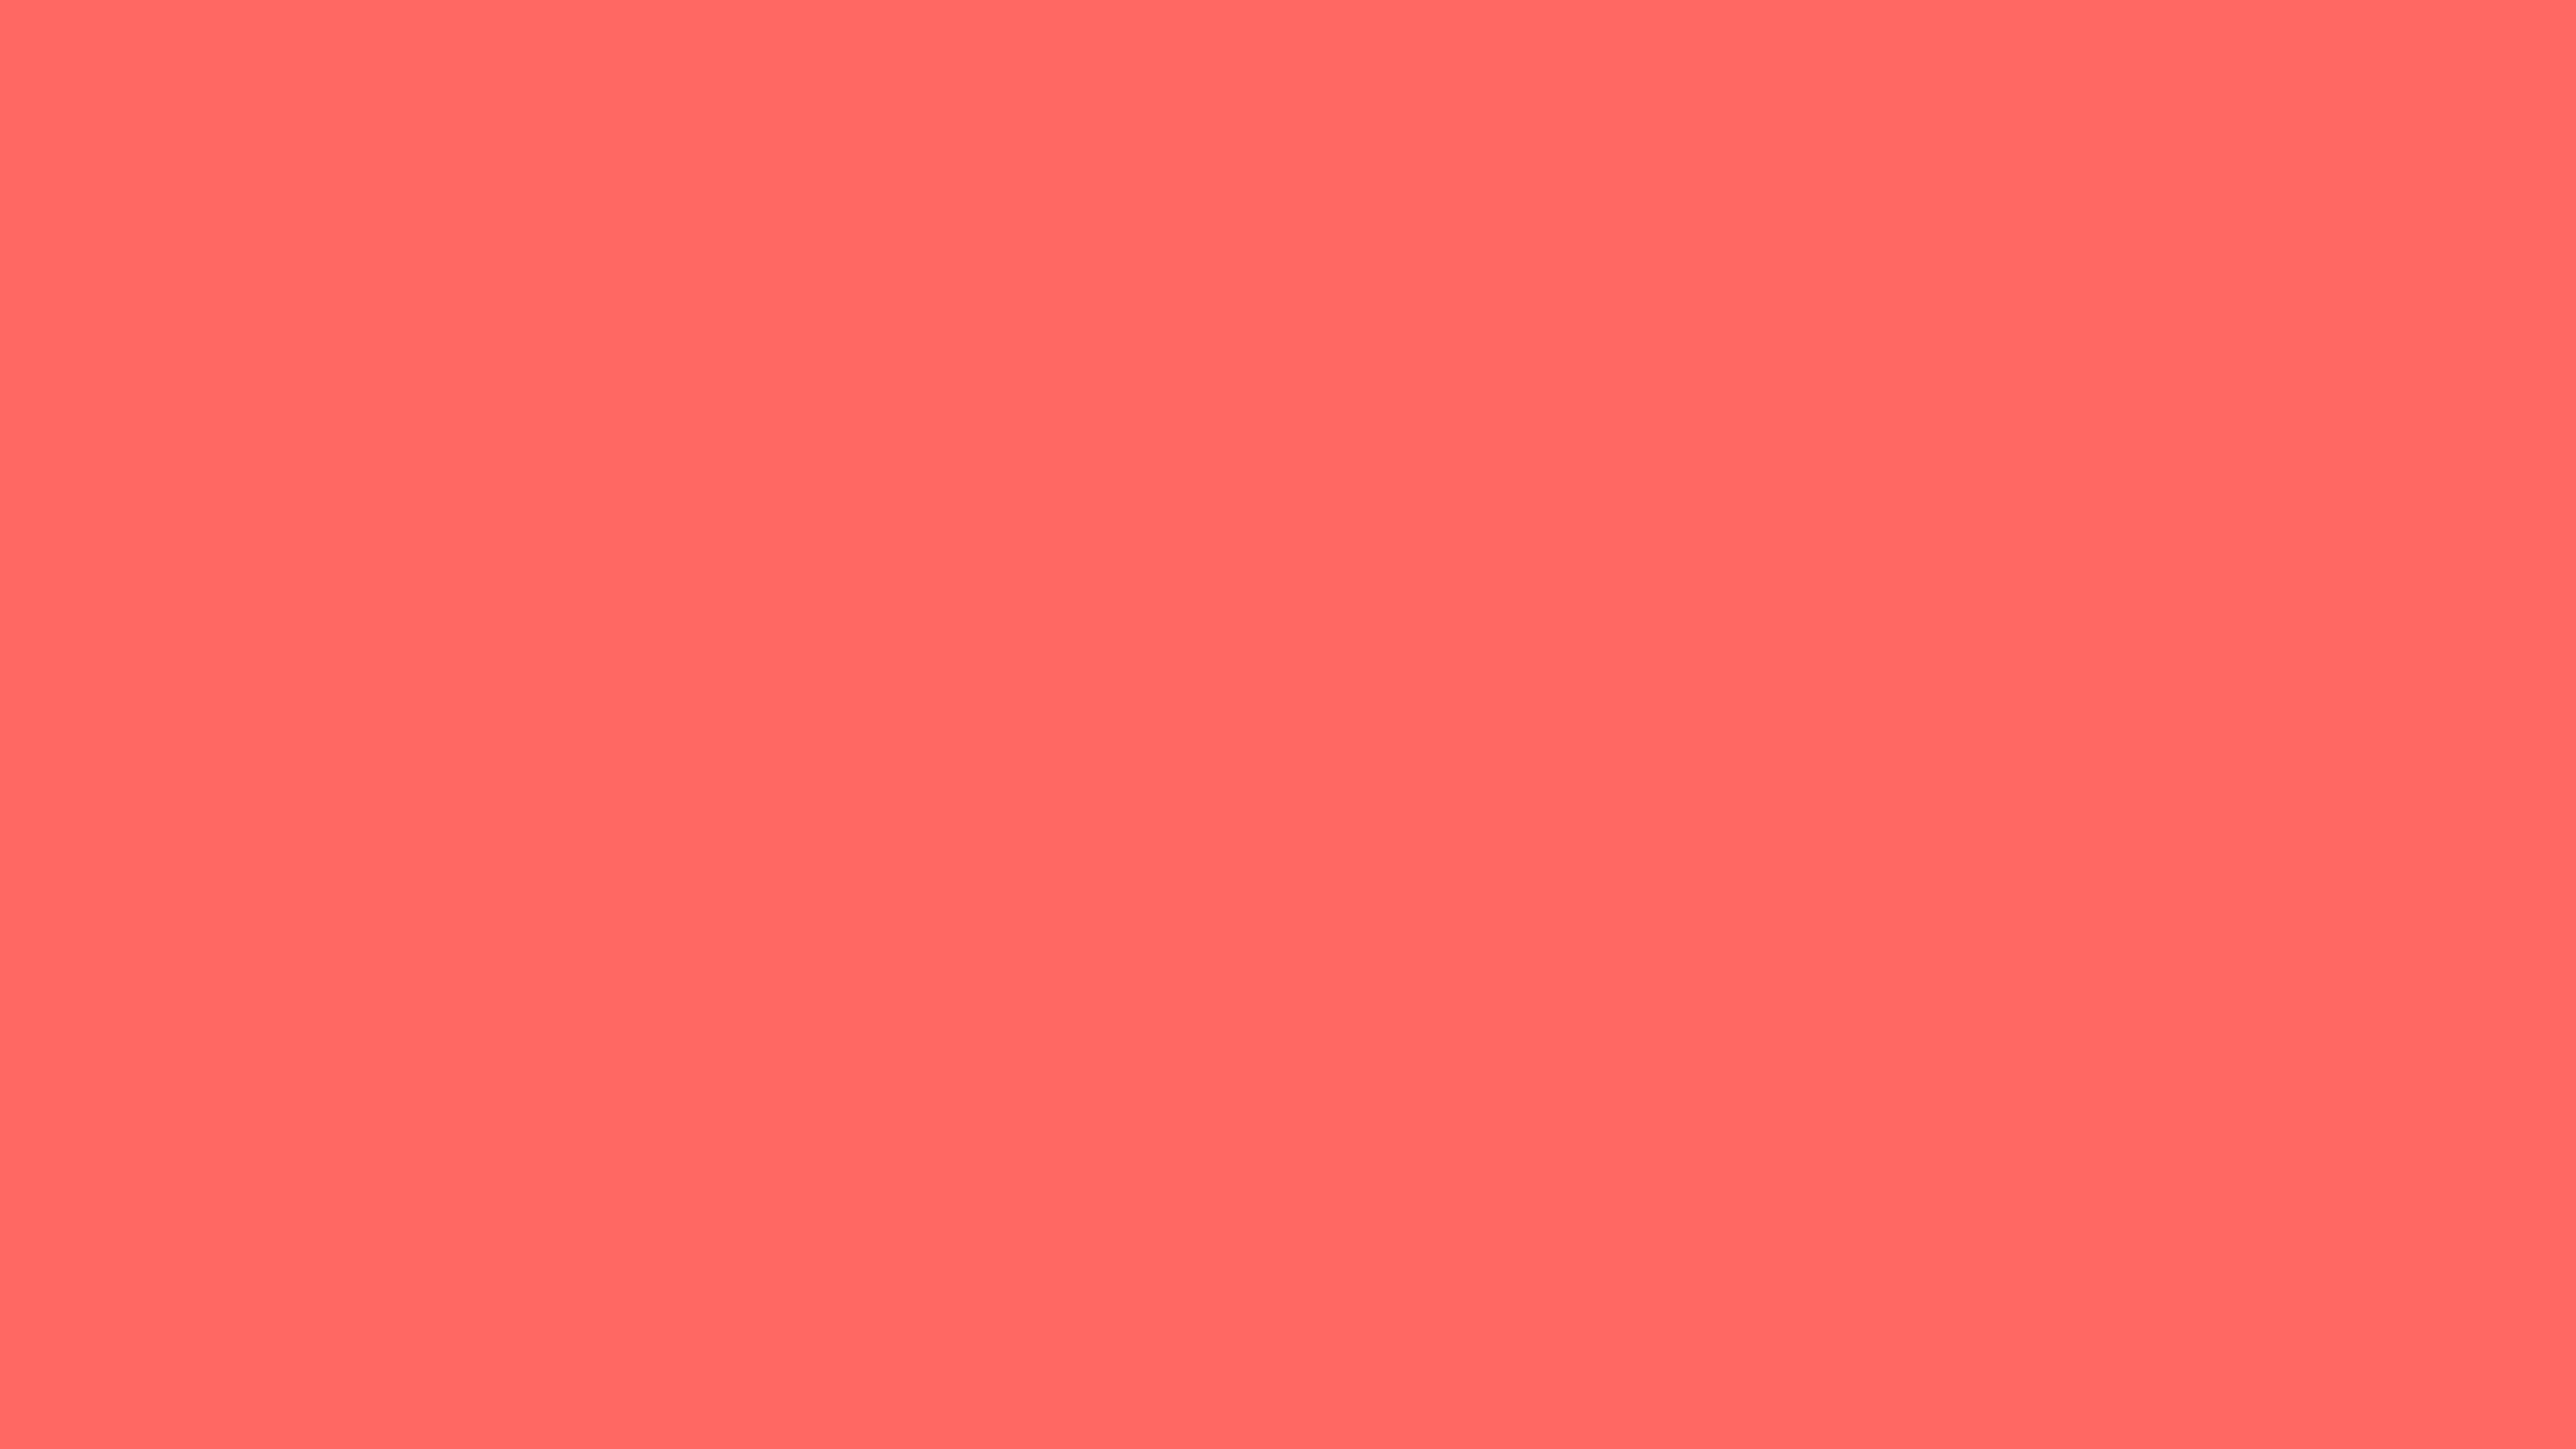 5120x2880 Pastel Red Solid Color Background